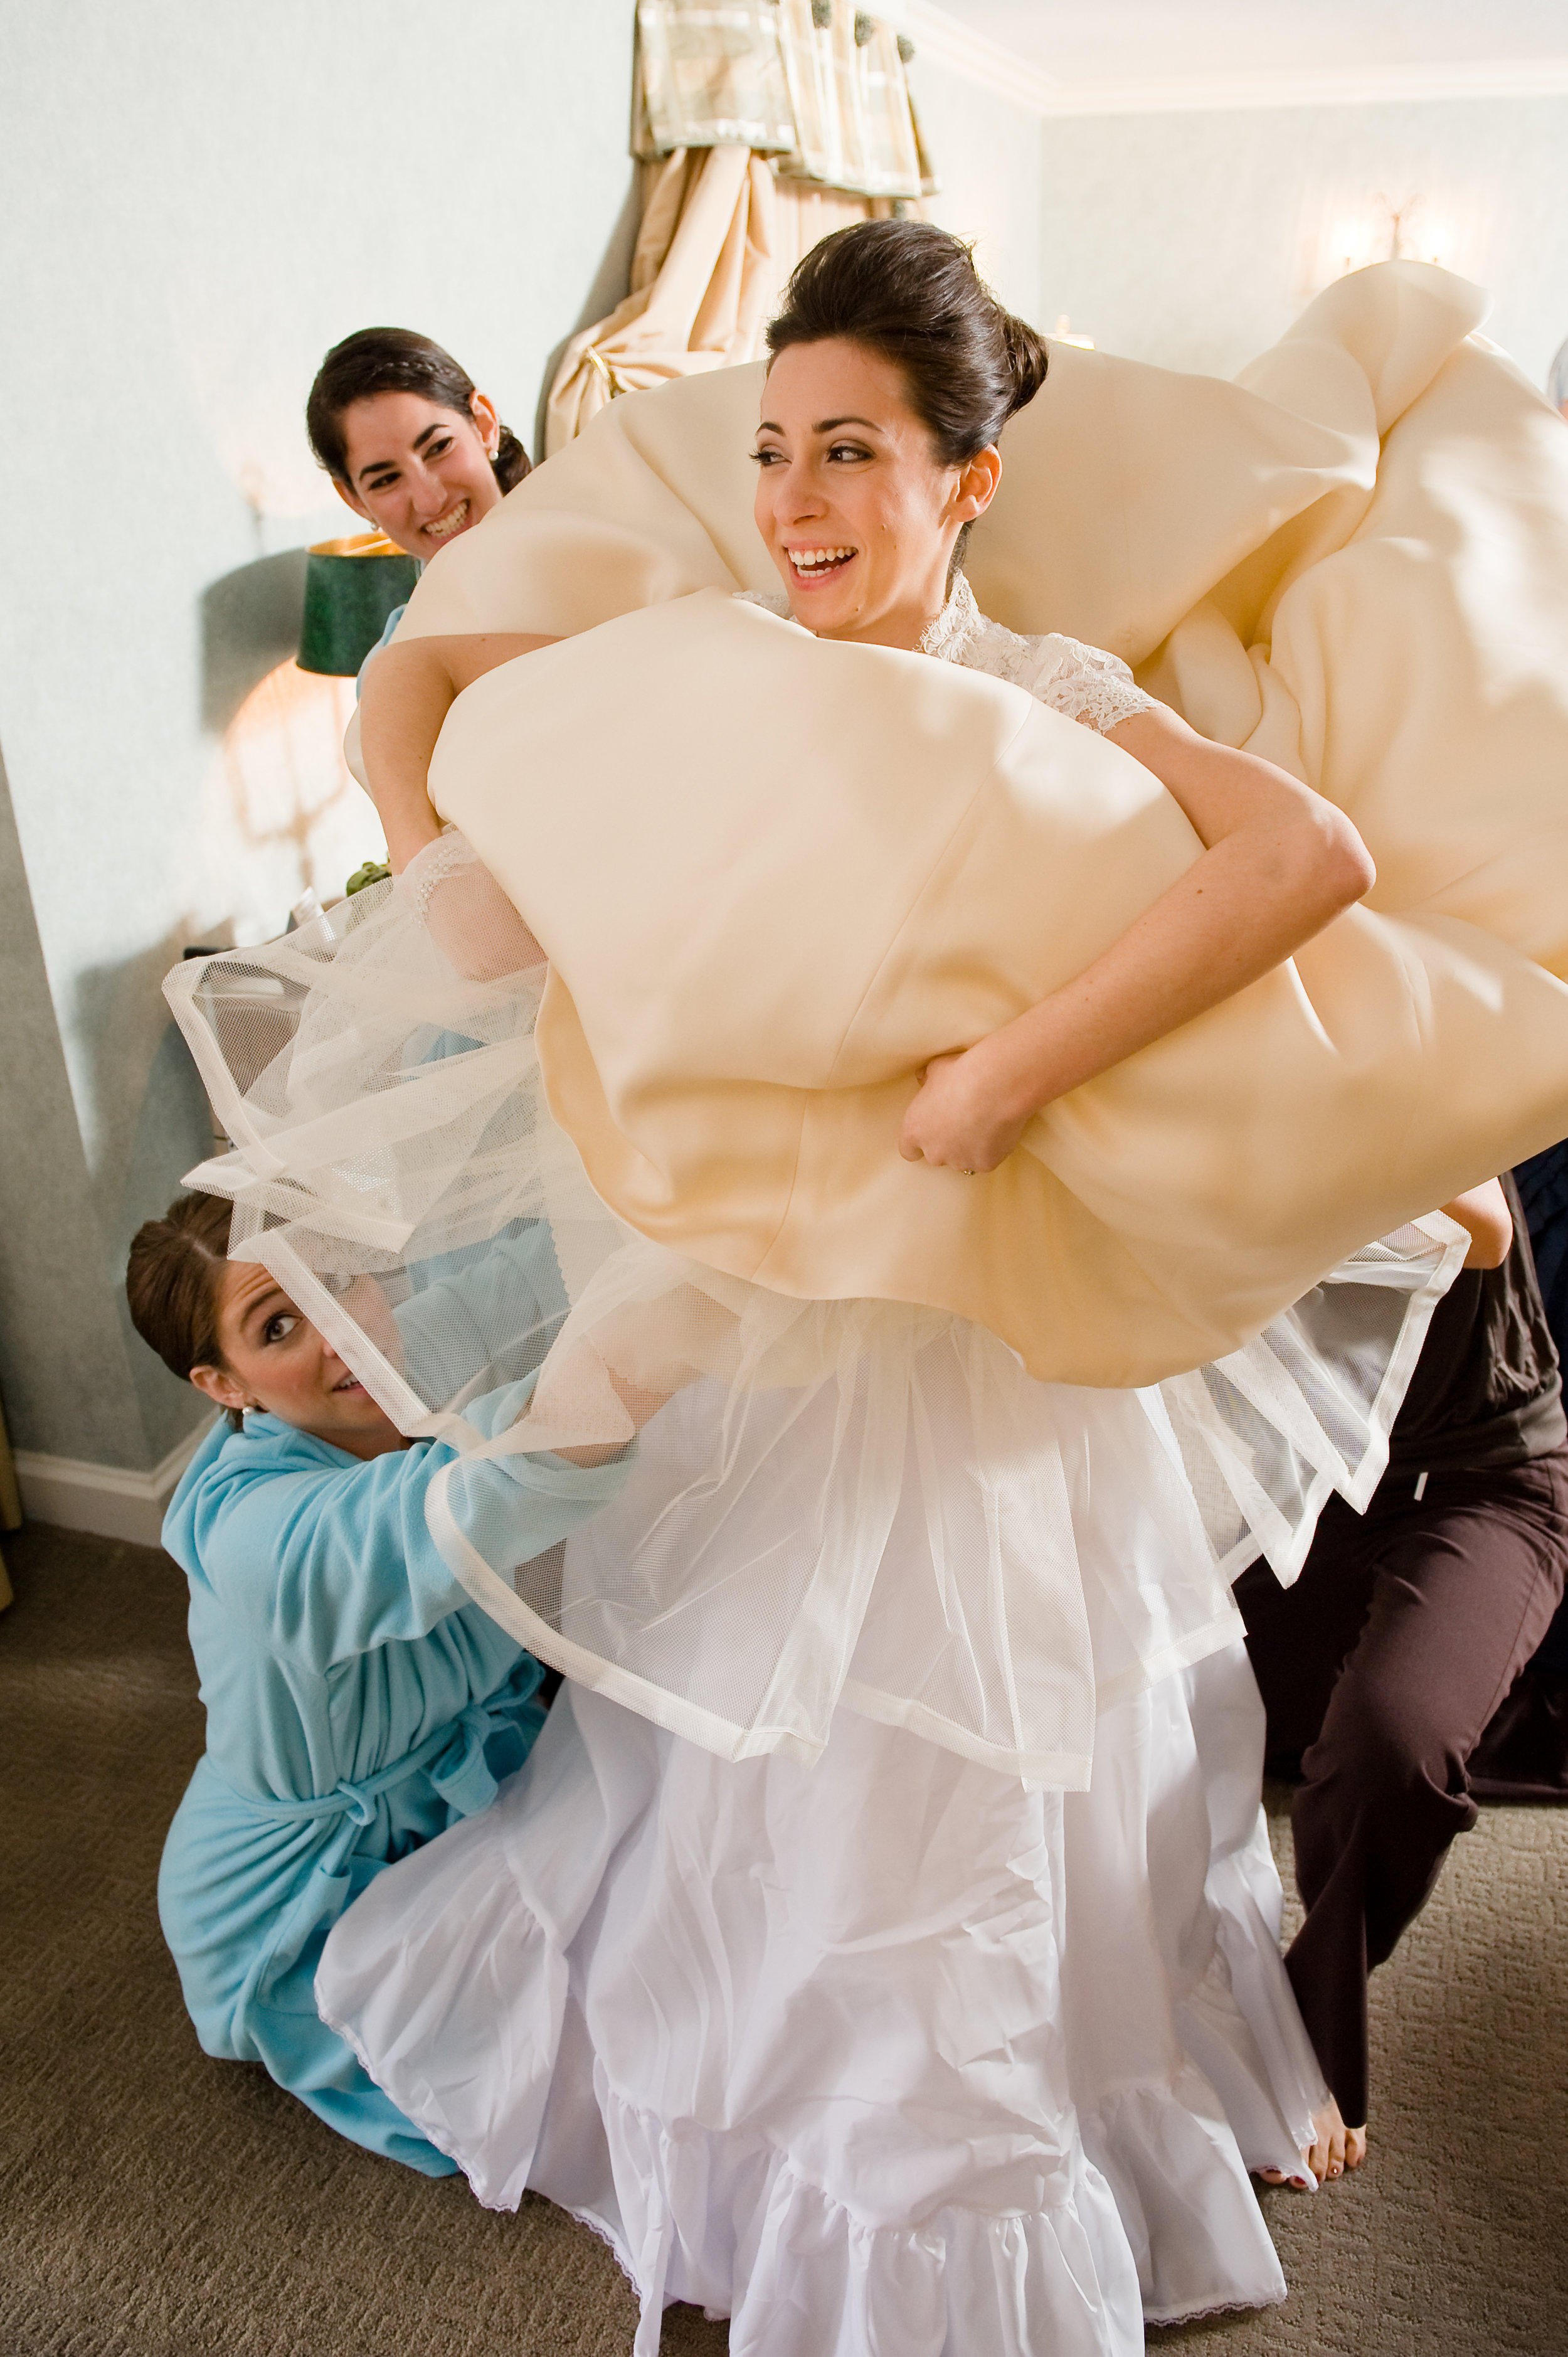 A bride gets a hand from her bridesmaids, photographed by Scott Myers